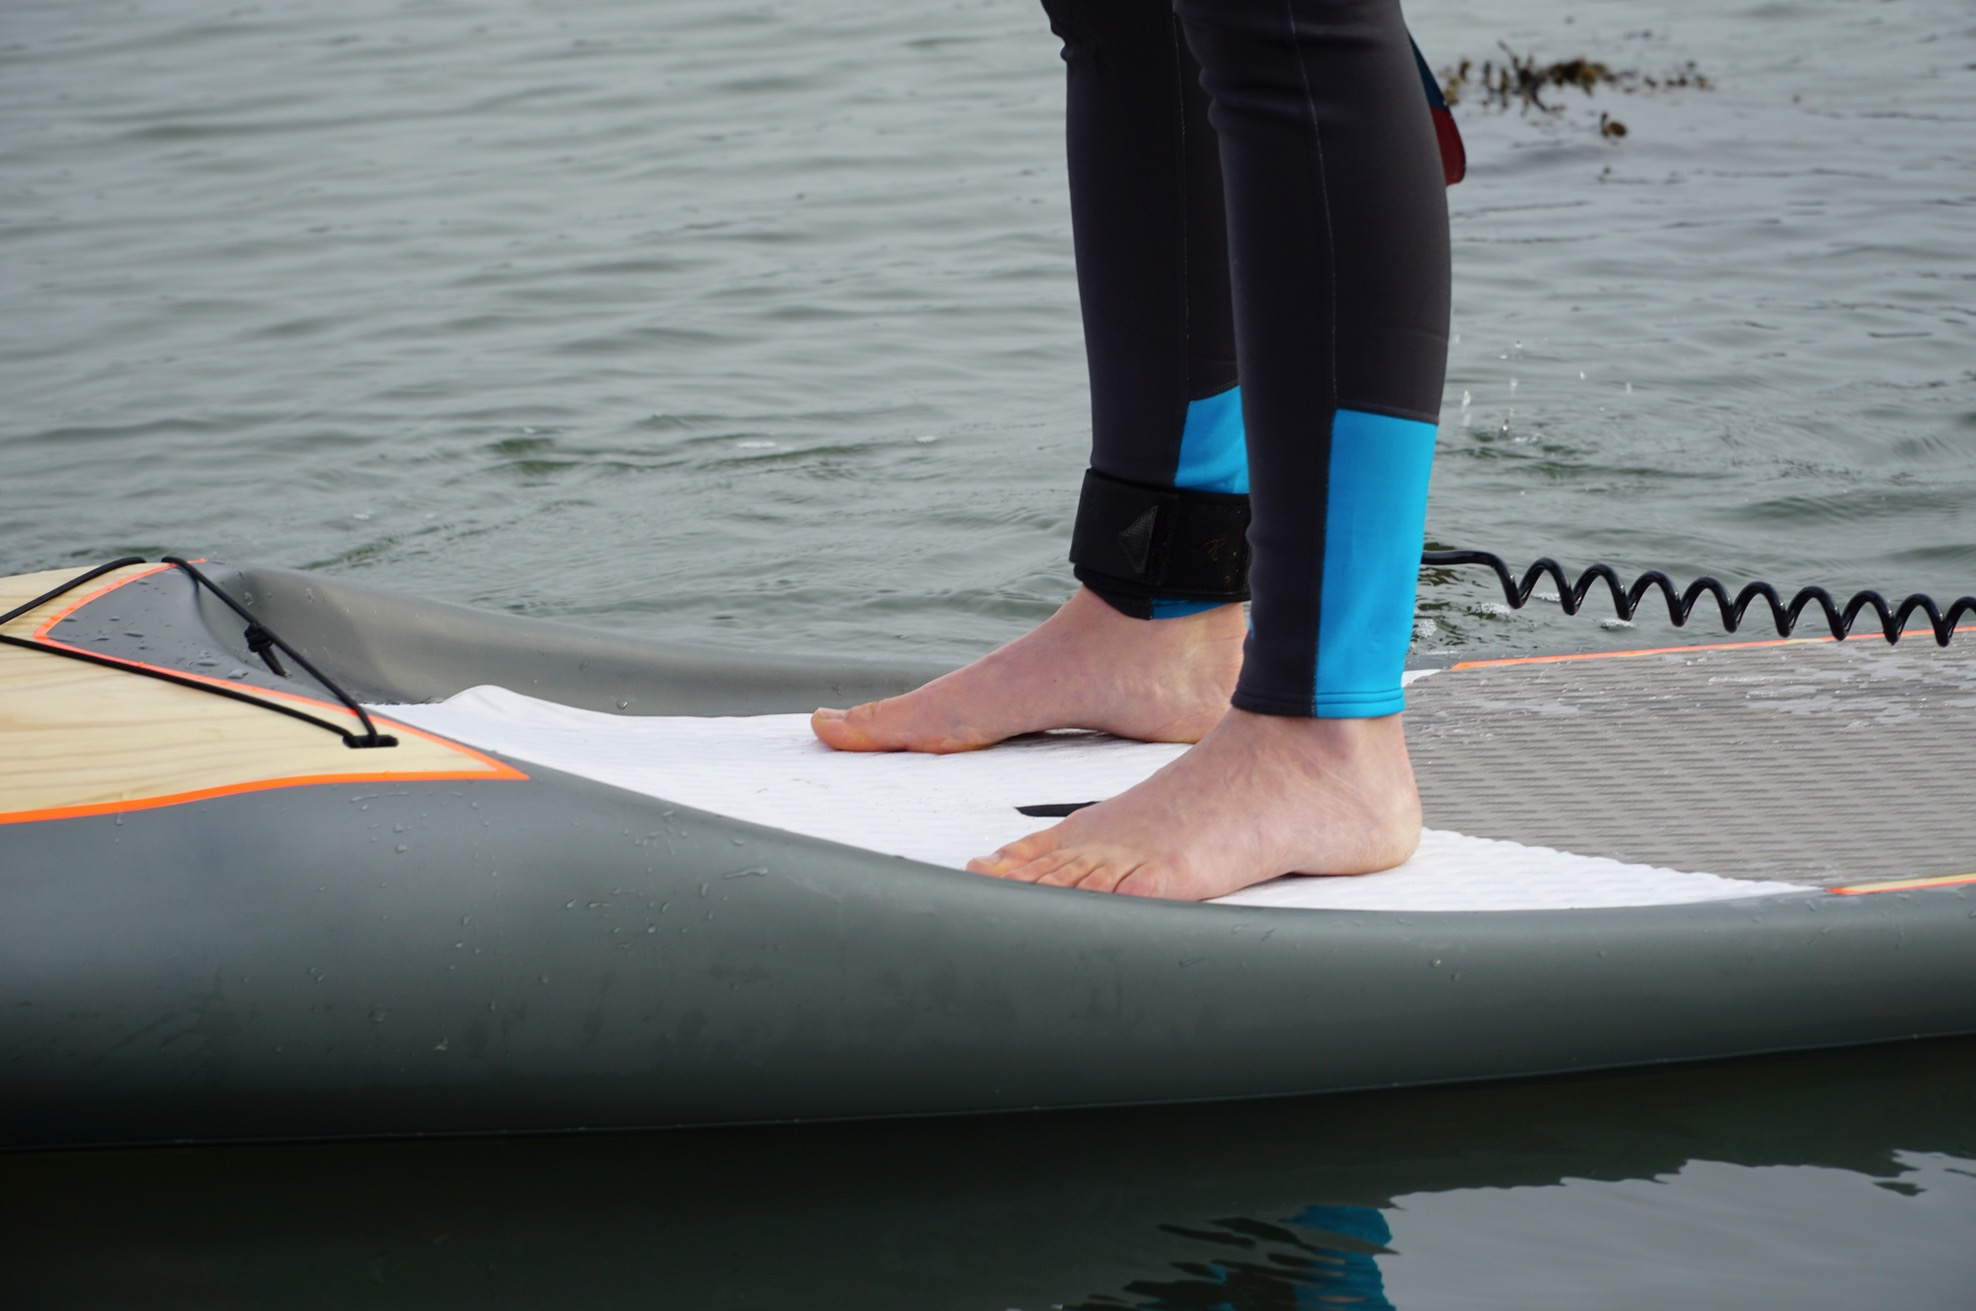 What to wear on your feet paddleboarding? - bare feet